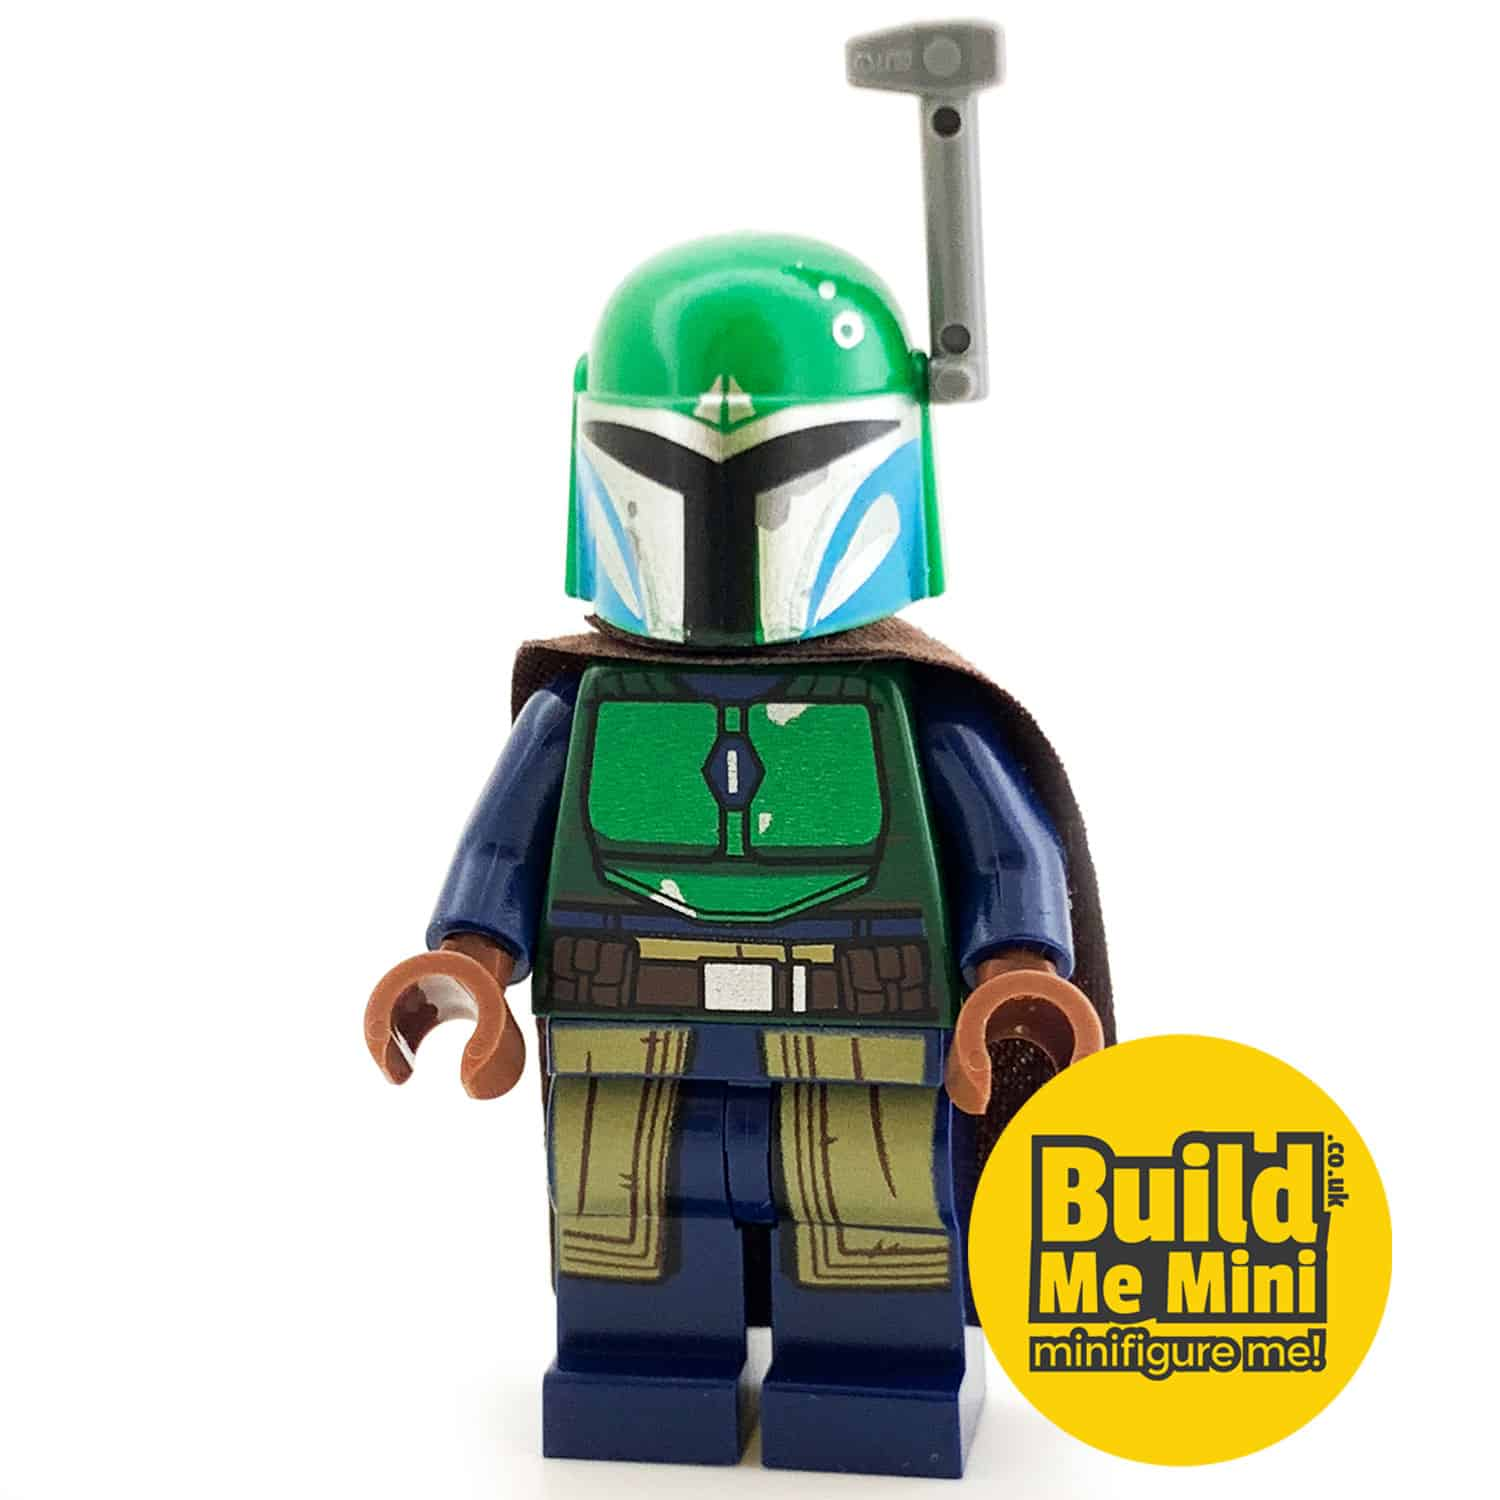 LEGO Star Wars – Mandalorian Armour – Green, Dark Blue